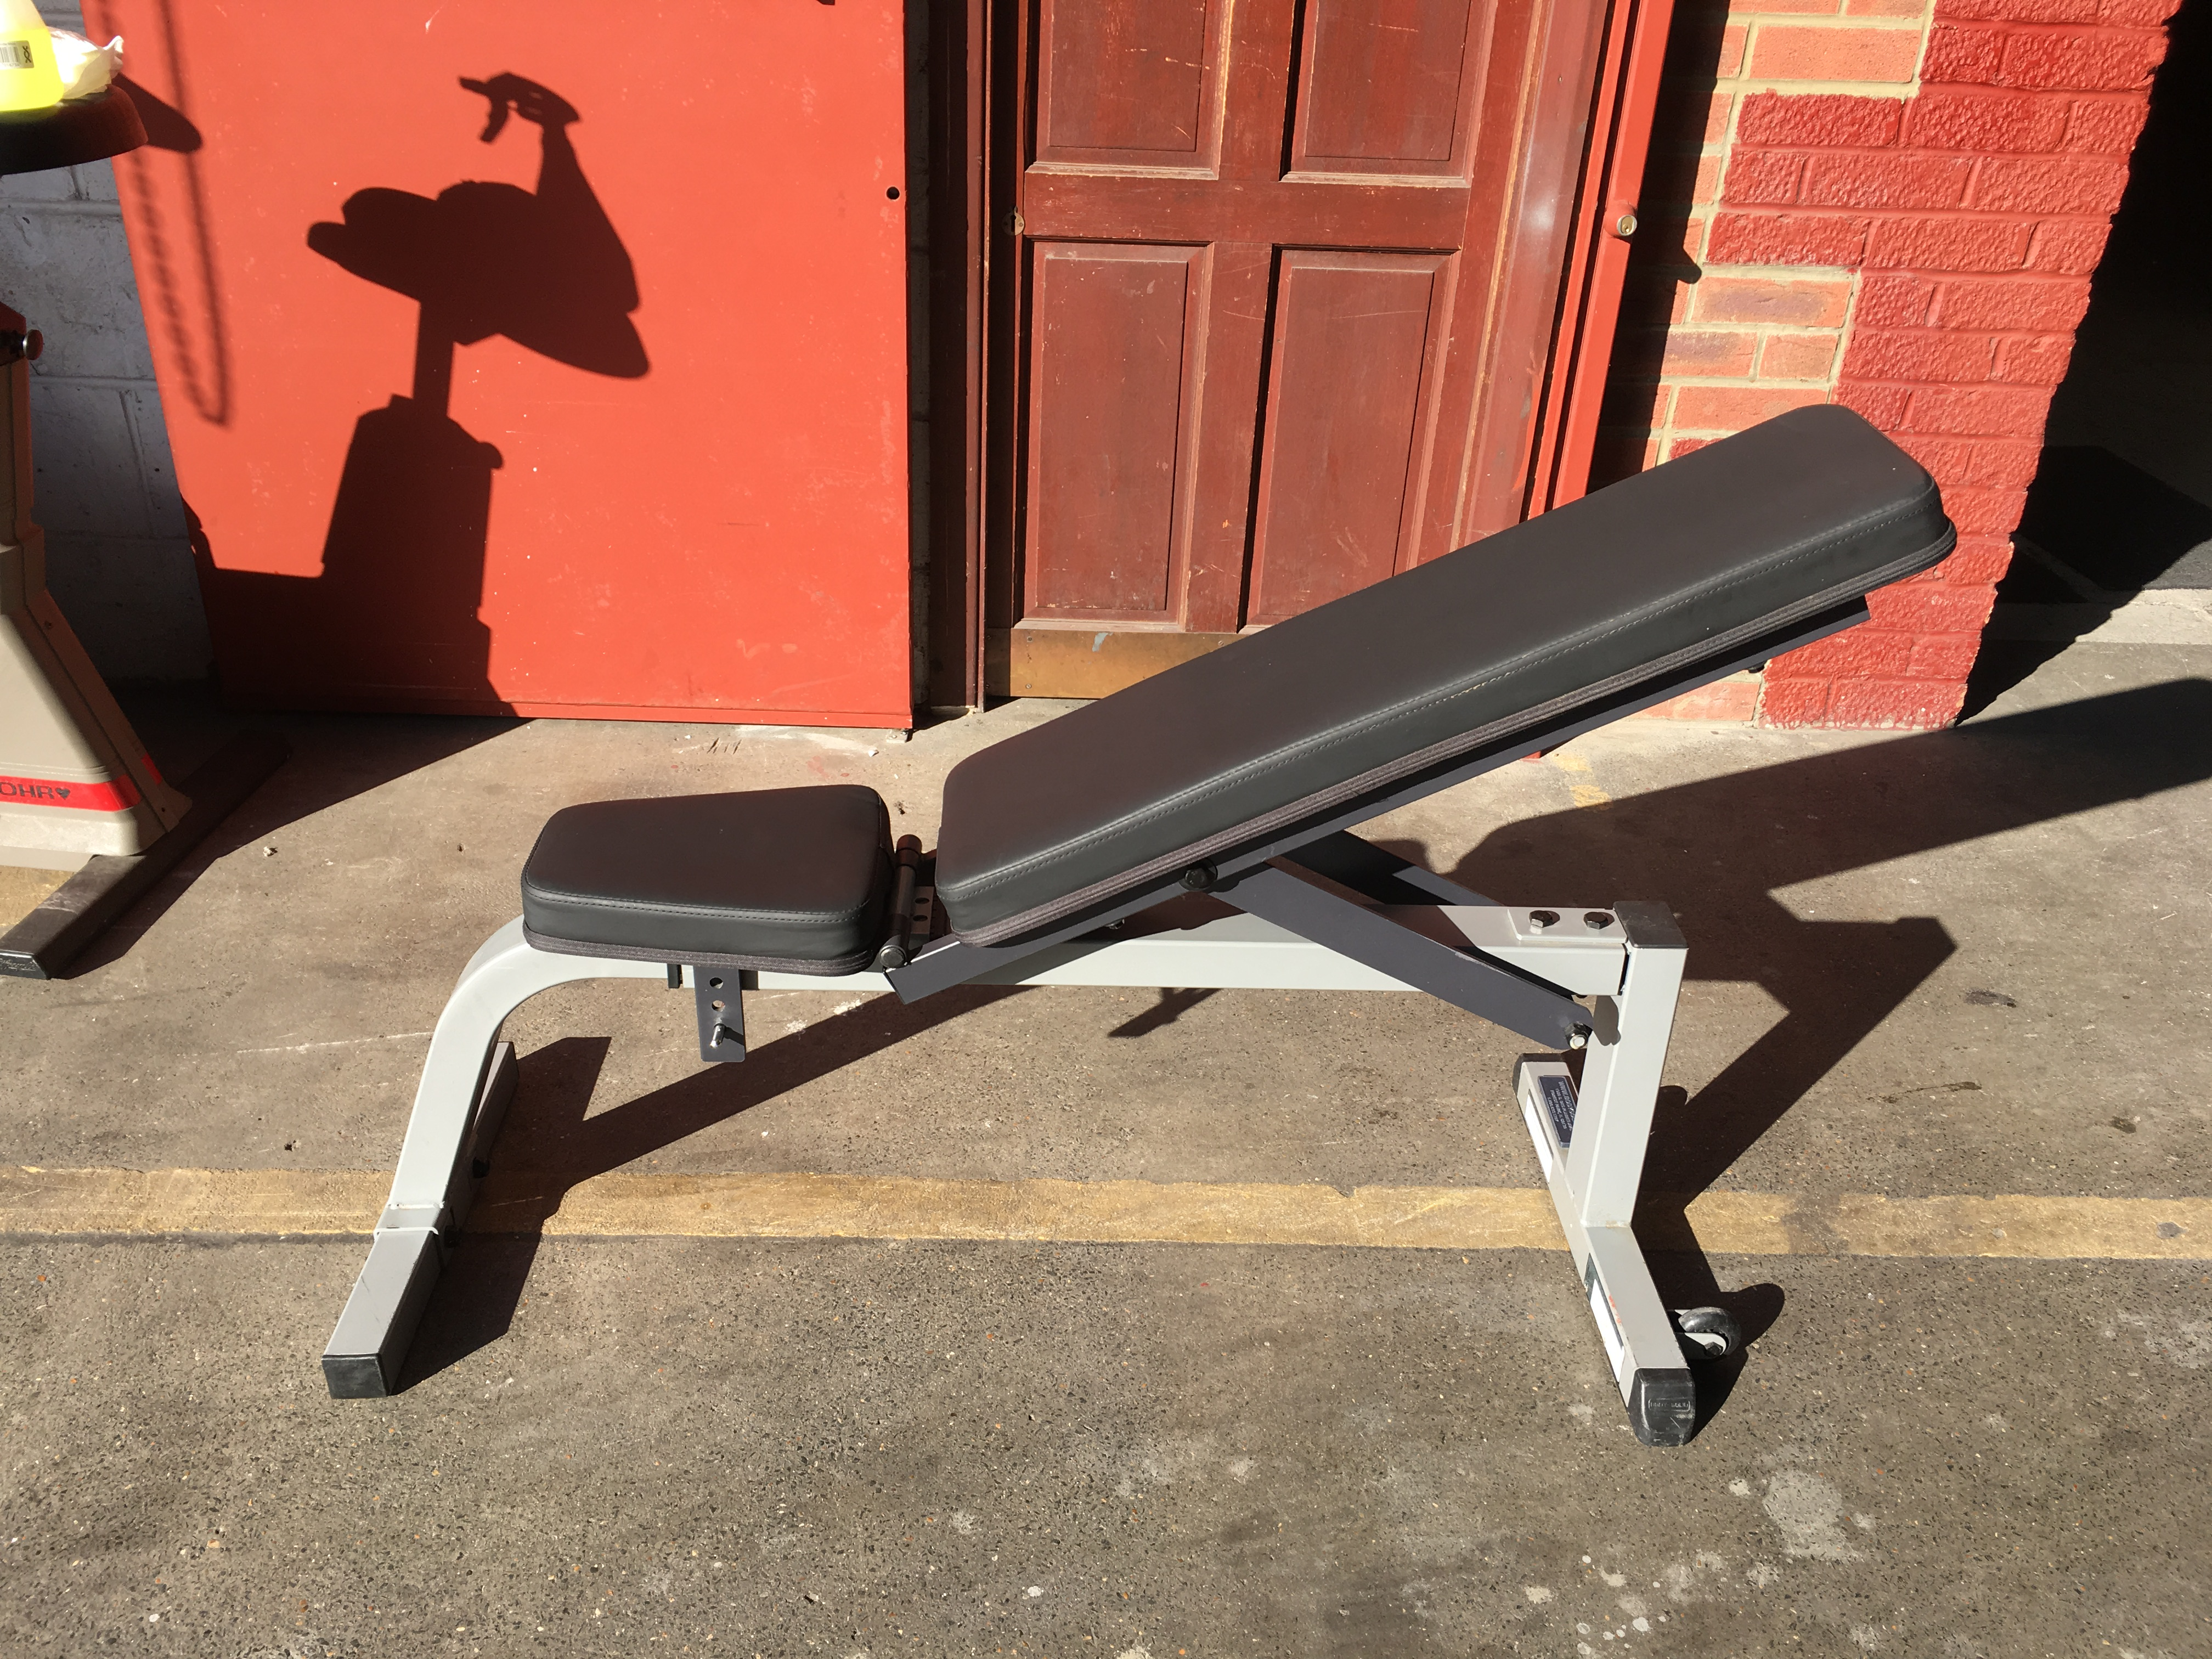 Fixed Leg Adjustable Weight Bench